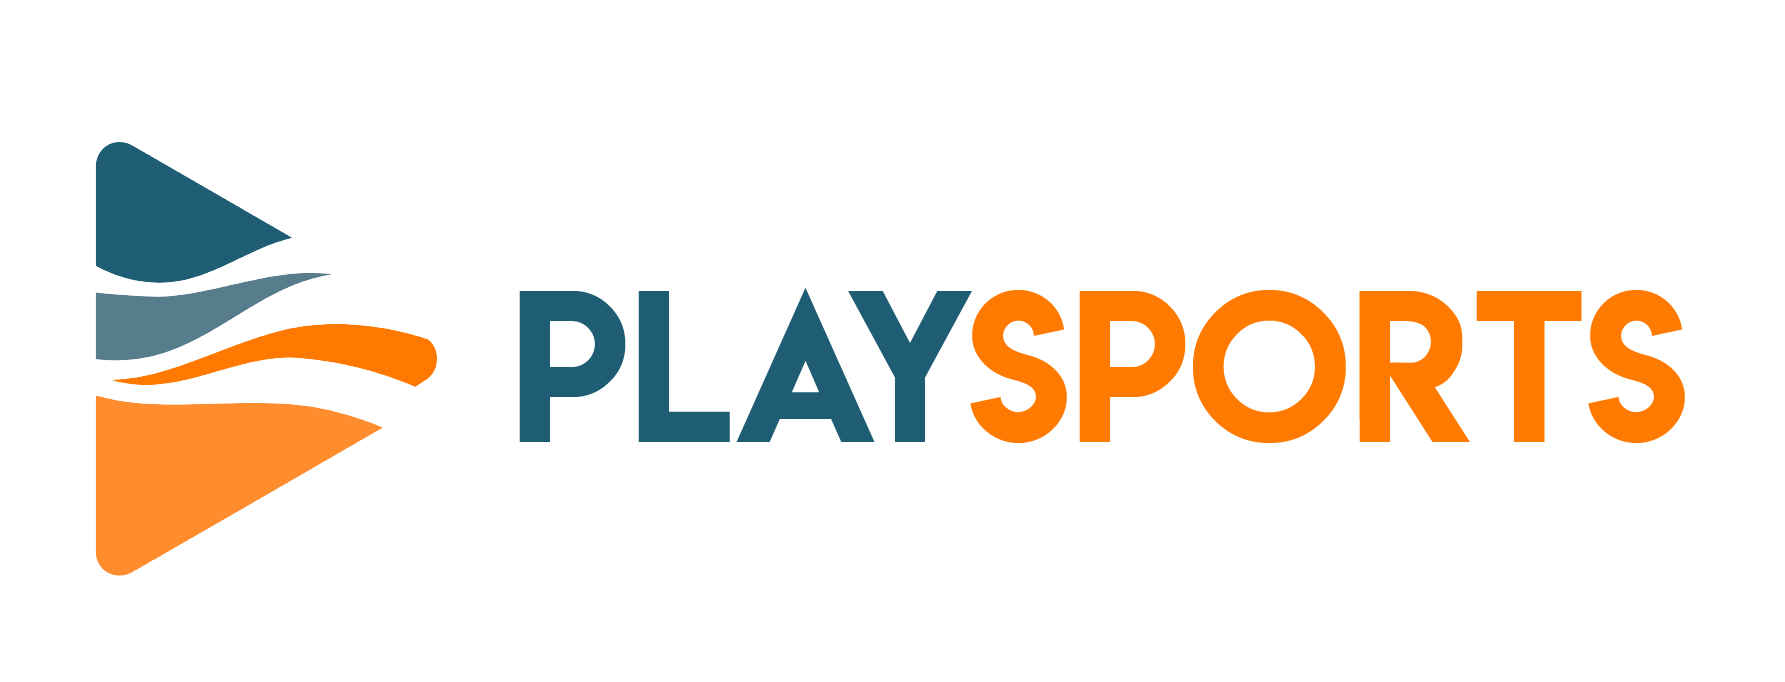 Store Playsports